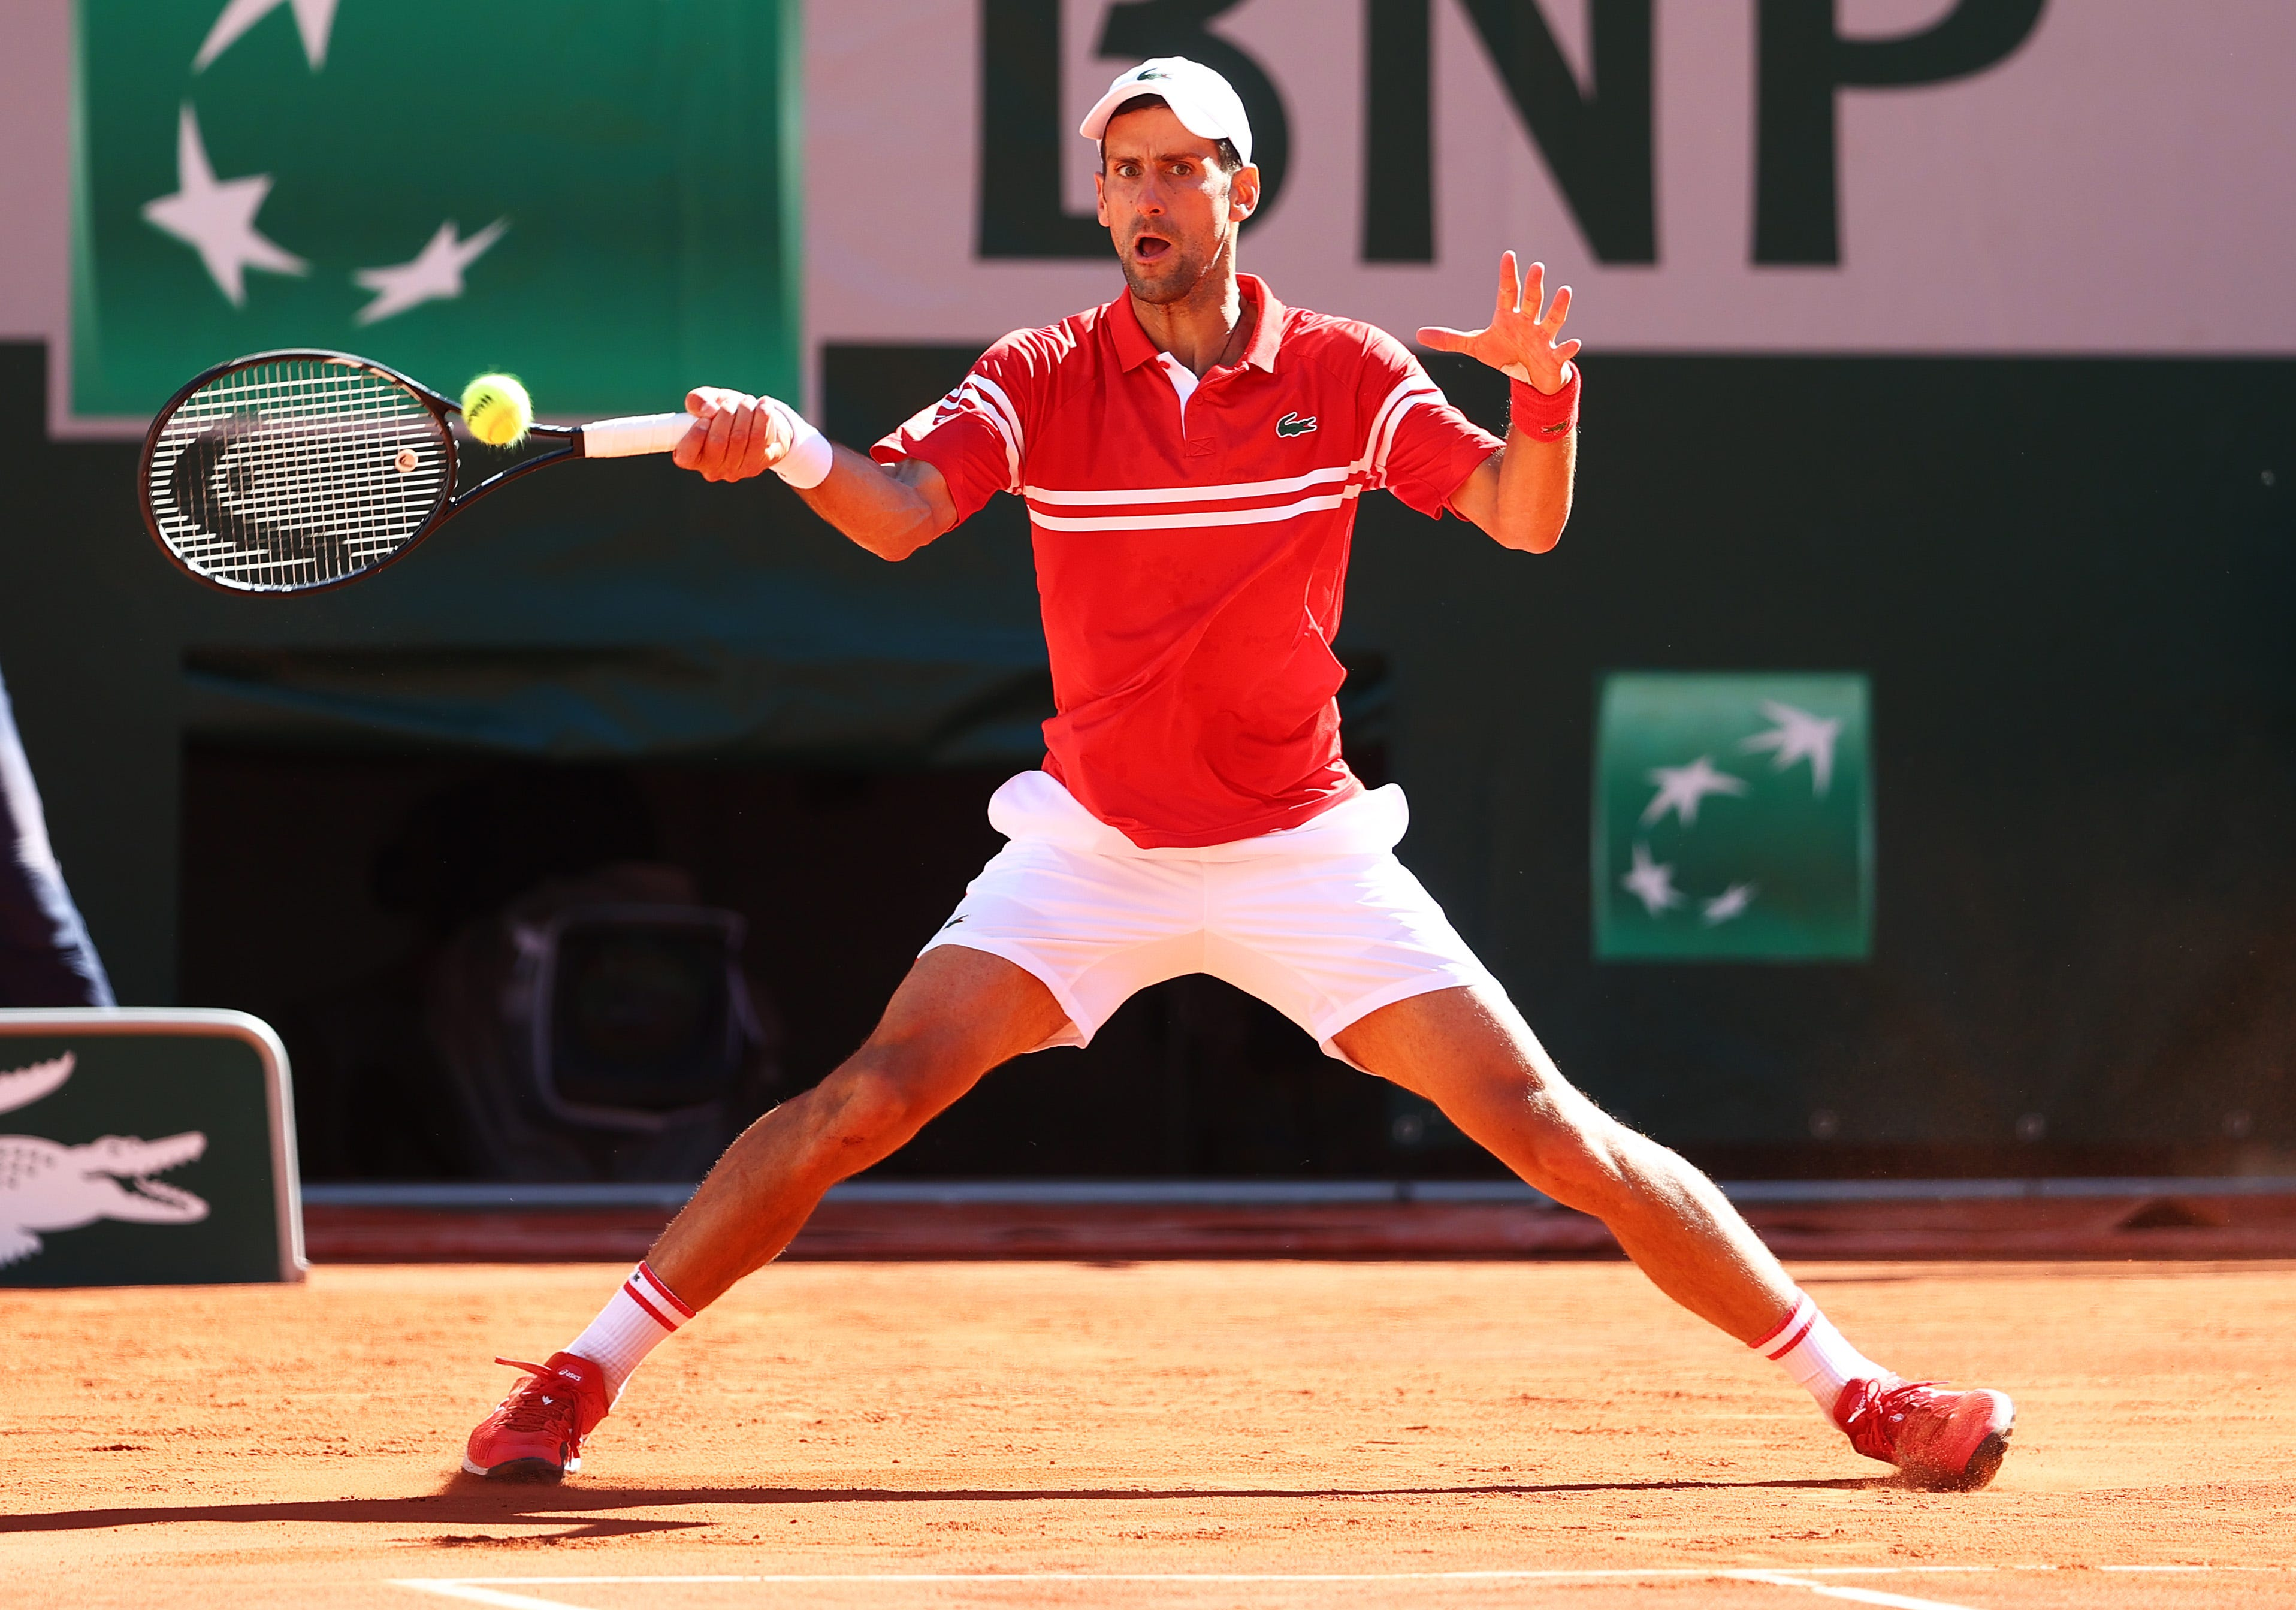 Novak Djokovic storms back to win French Open men's title in five sets